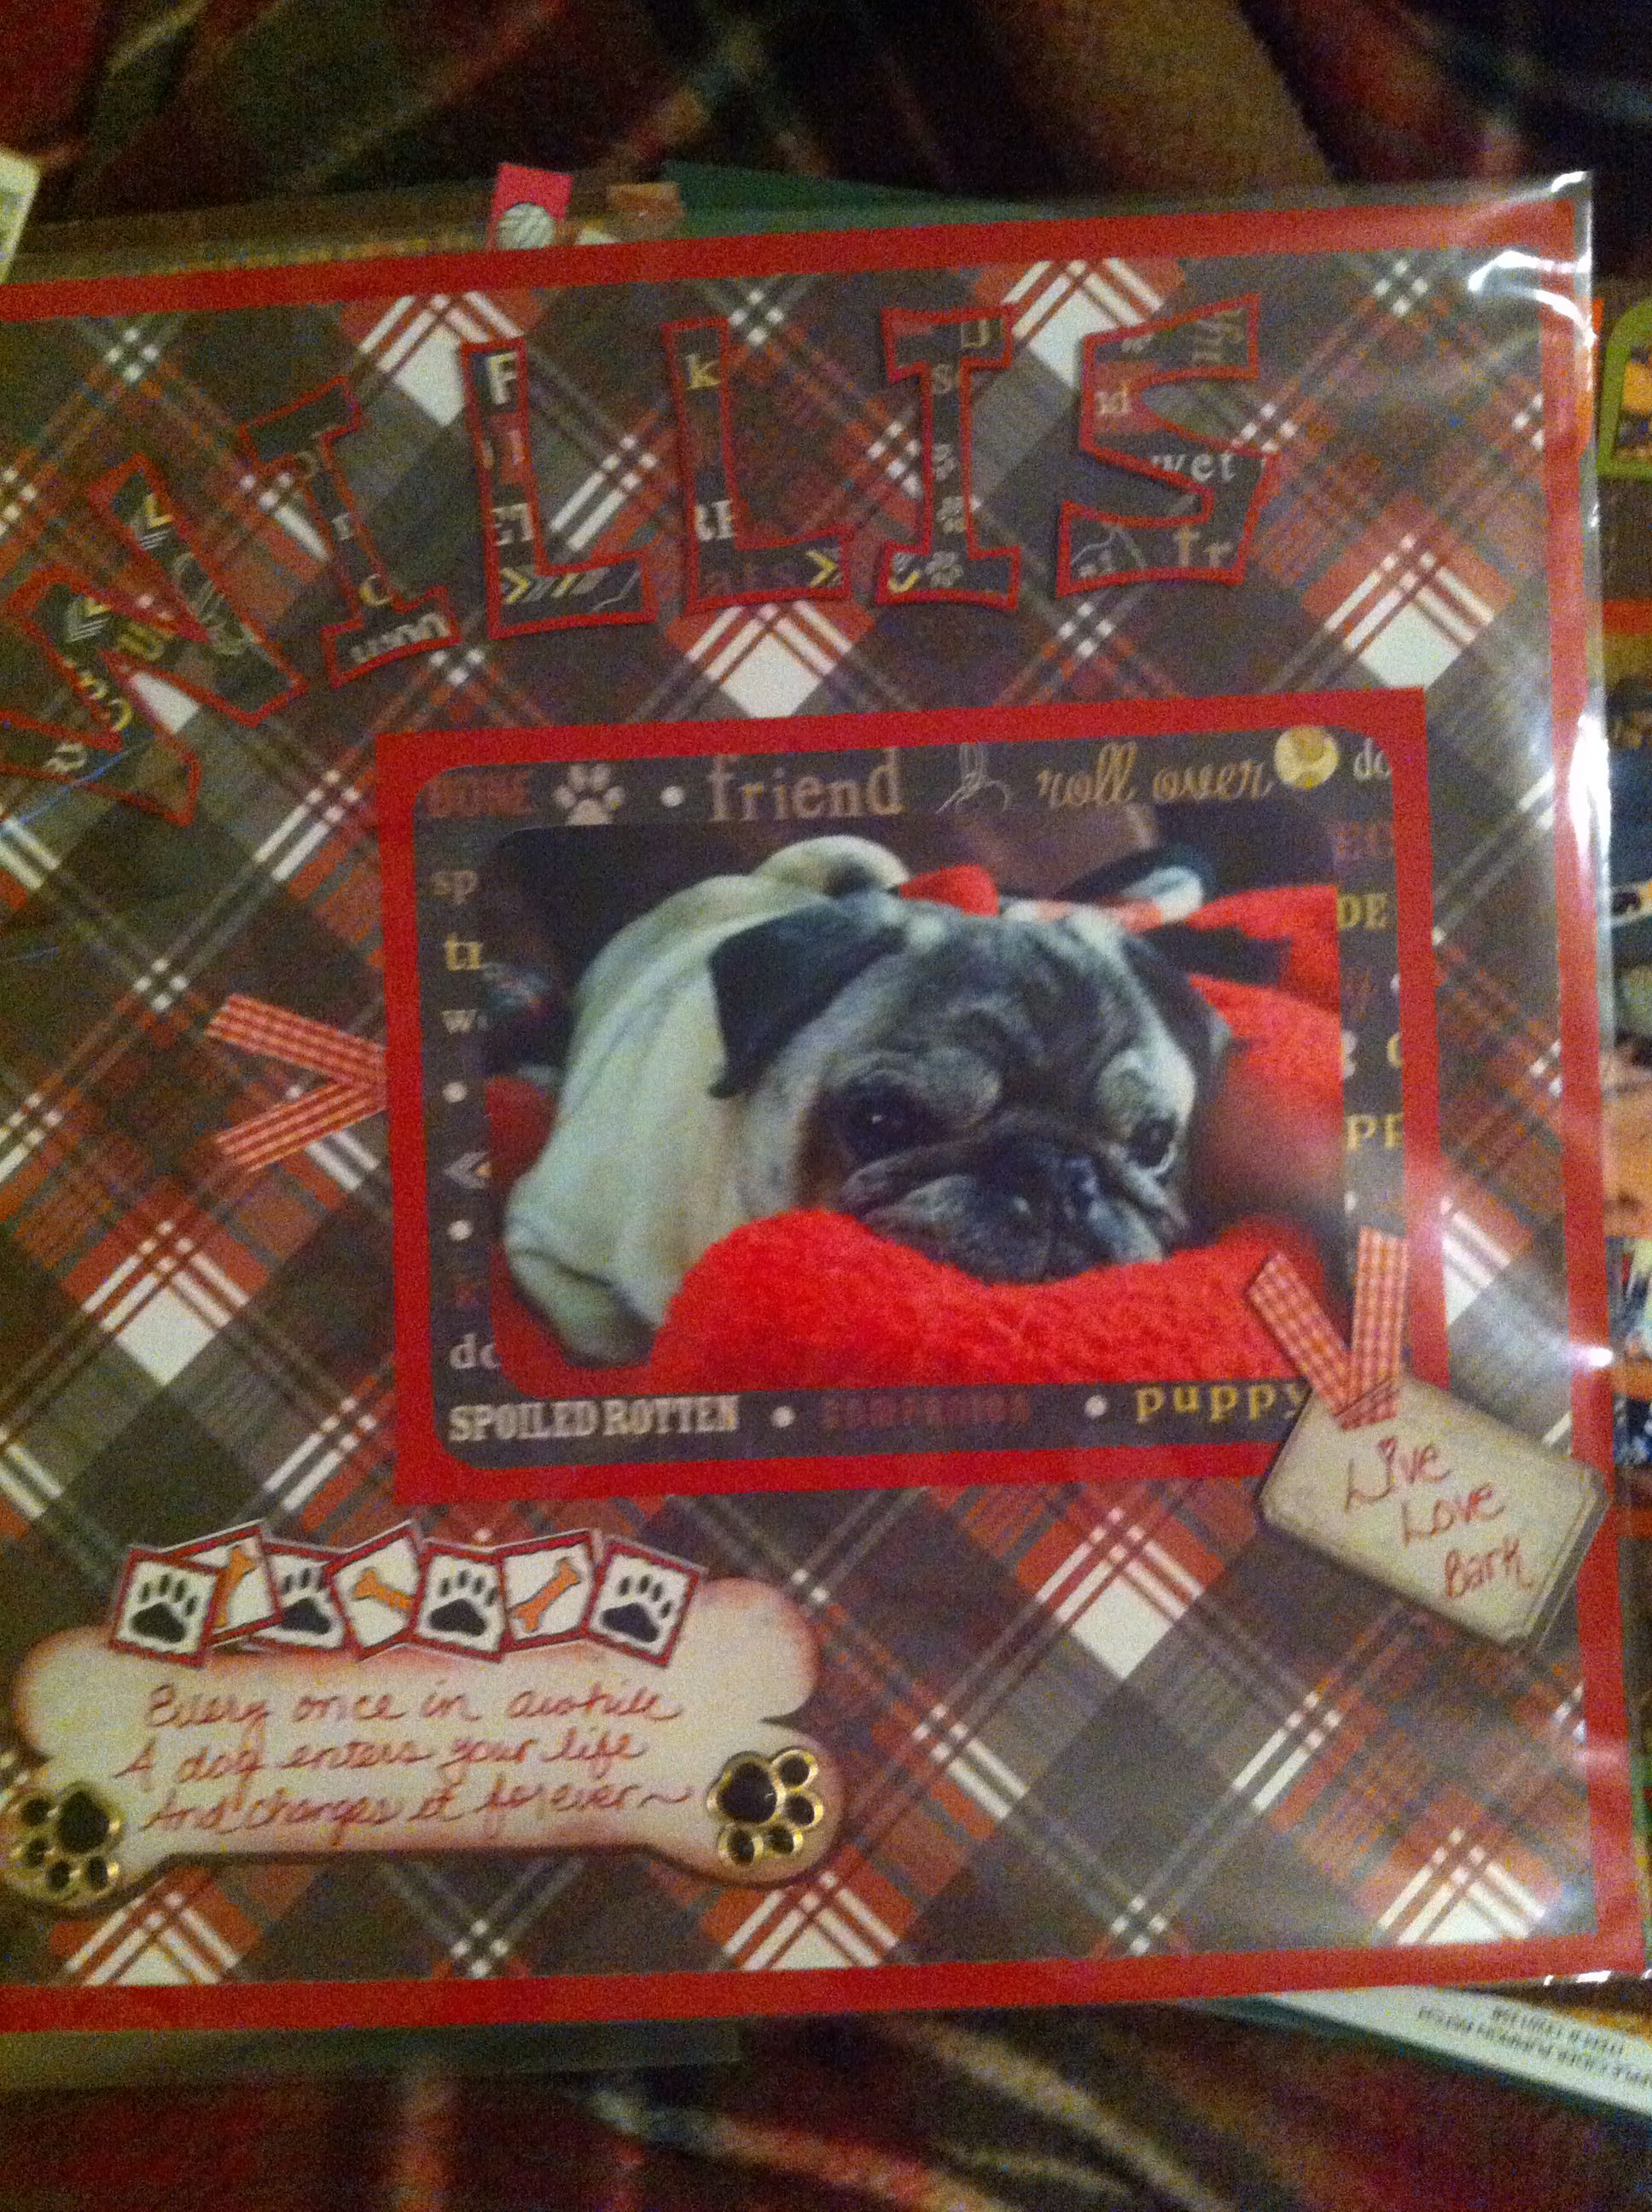 Pin by Stacey CavallinHedin on A layouts mine Doggy